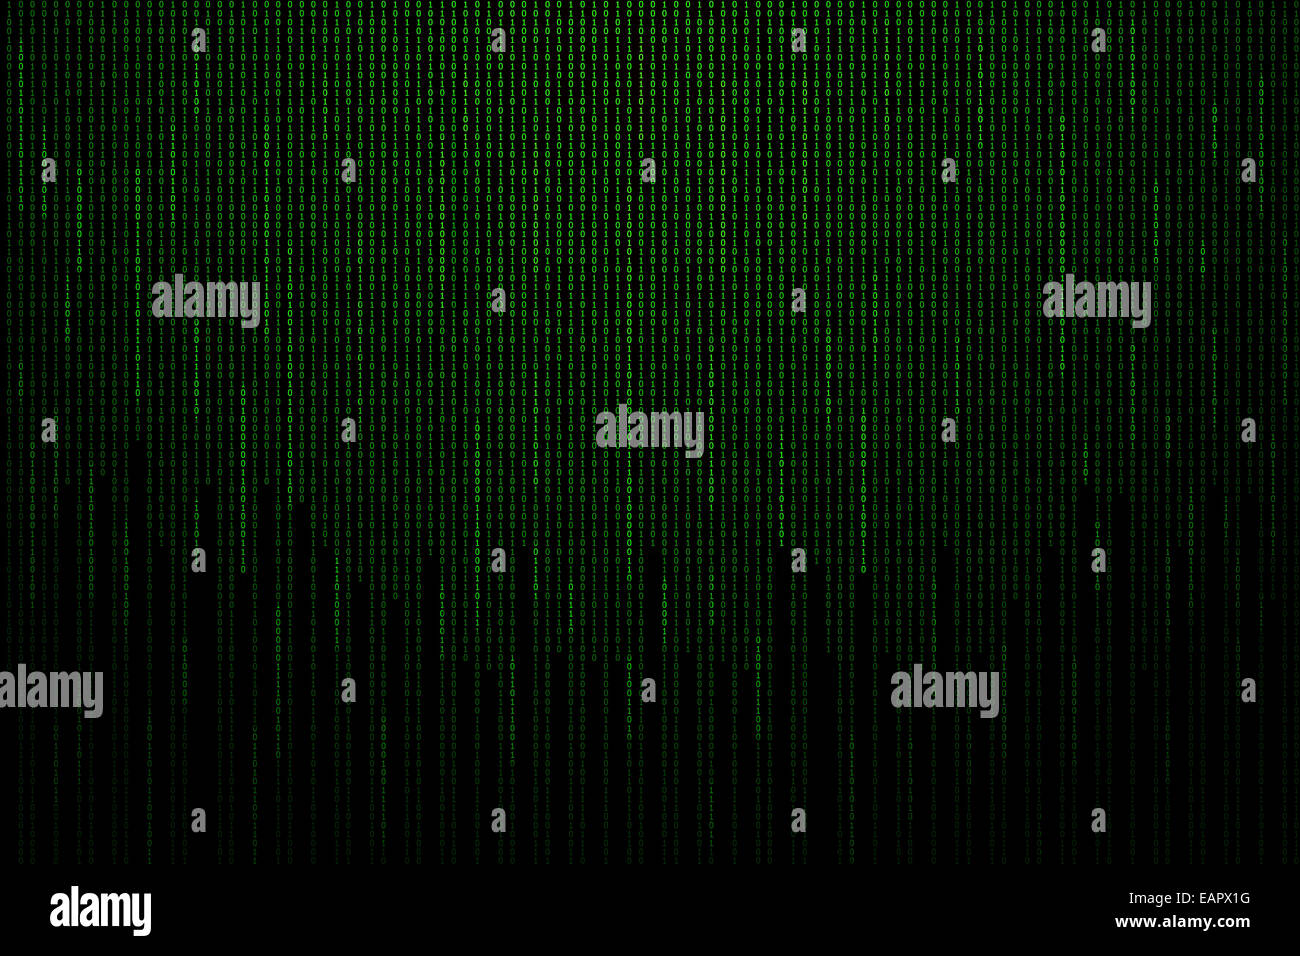 Matrix background with the green binary code. - Stock Image